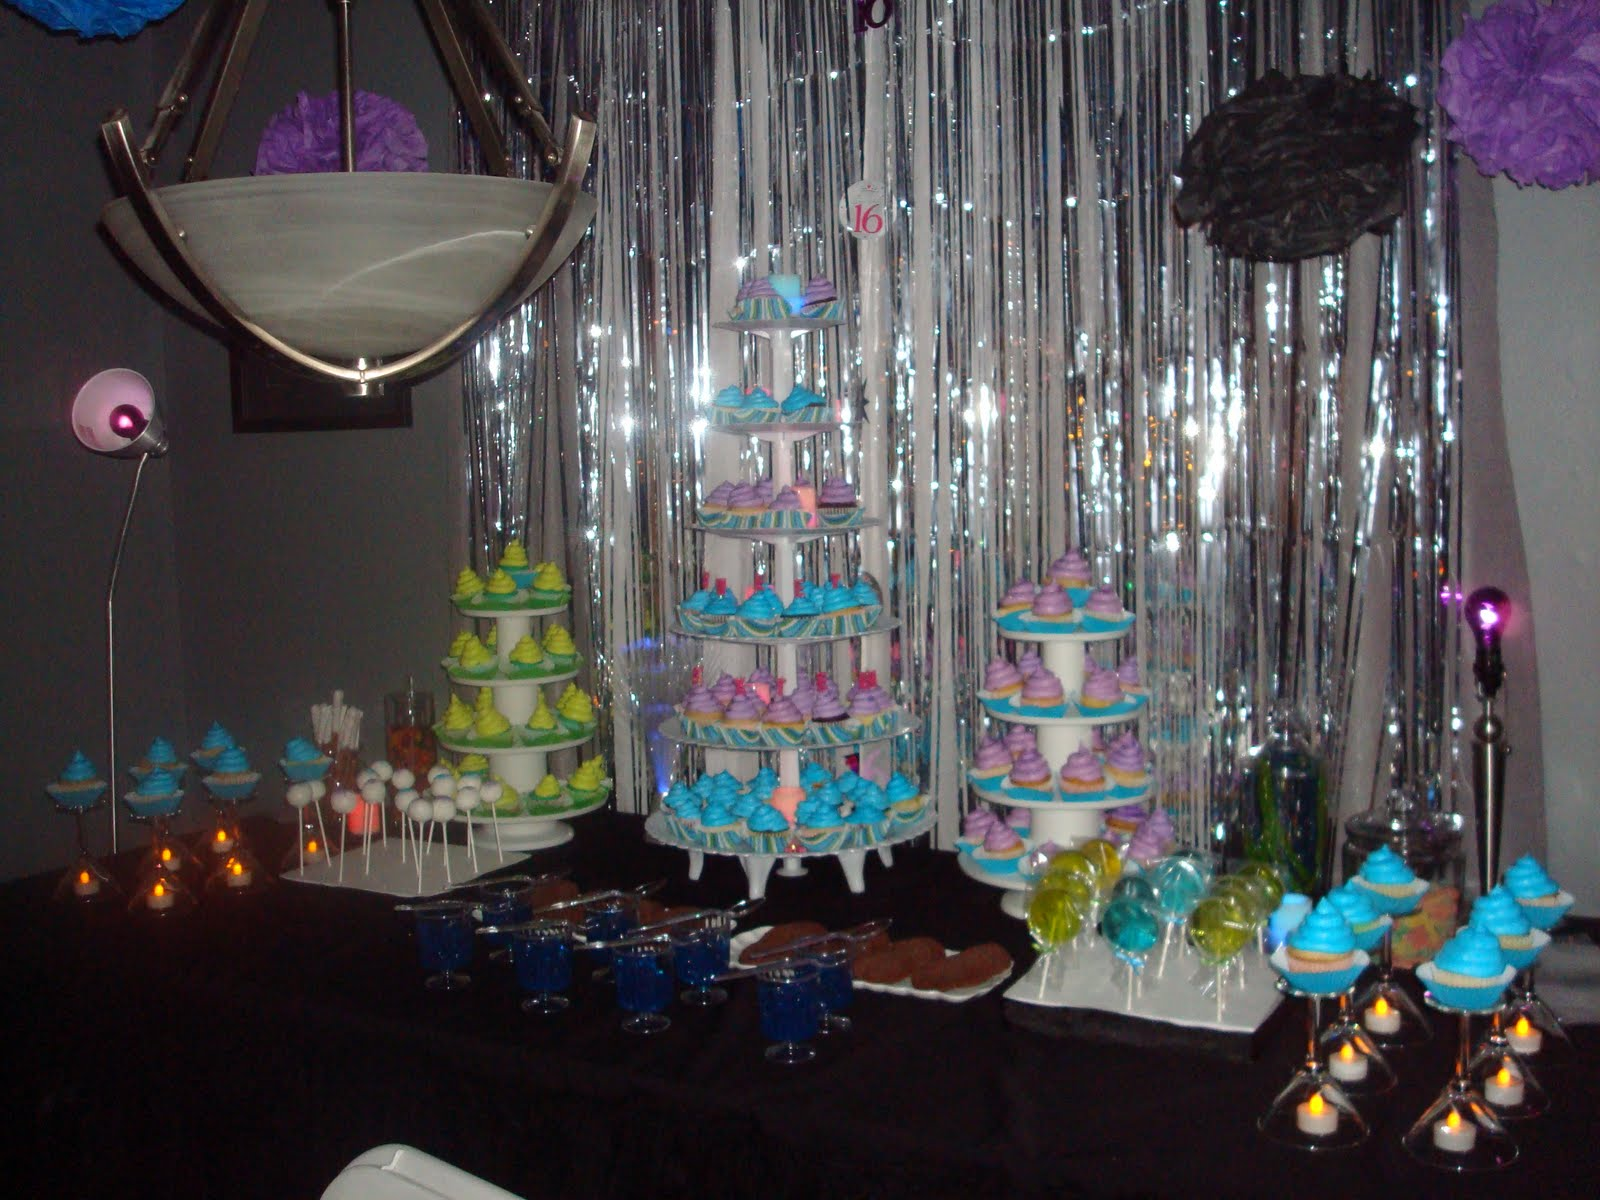 Glow Dark Theme Party | TEEN PARTY: Neon / Glow In The Dark Sweet 16 | Party  Ideas | Pinterest | Neon Glow And Sweet 16